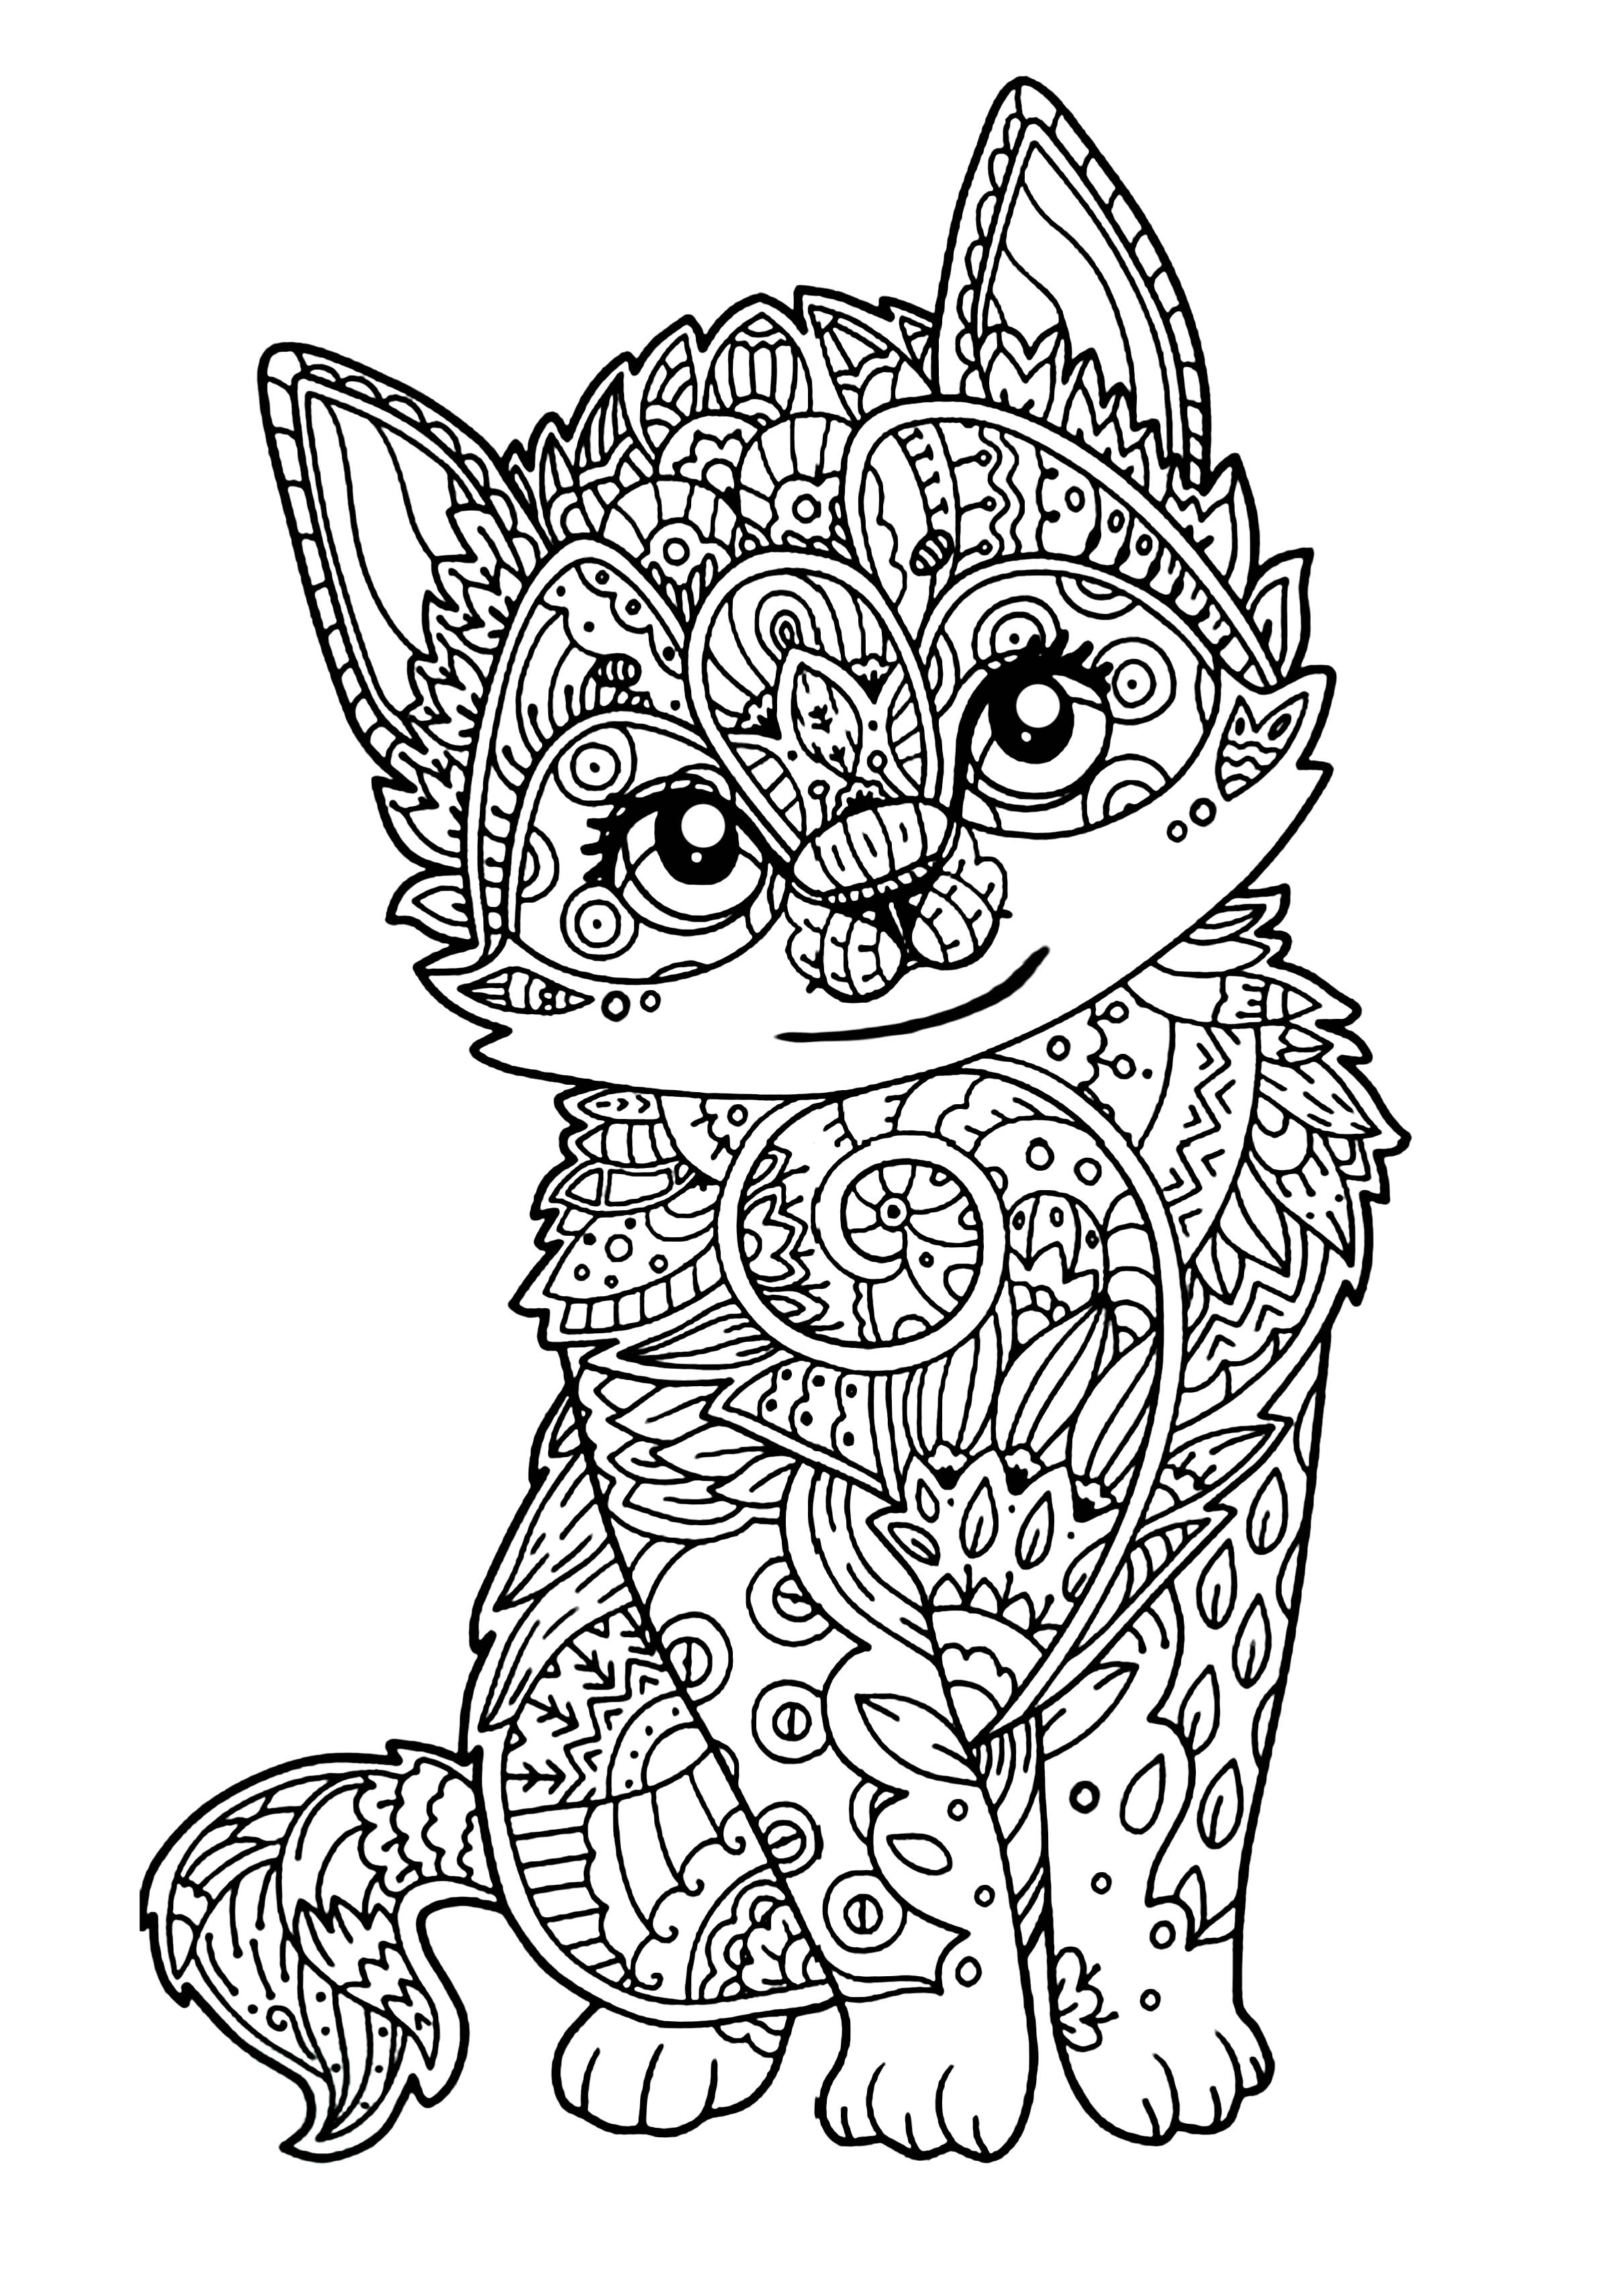 Cute kitten - Cats Adult Coloring Pages